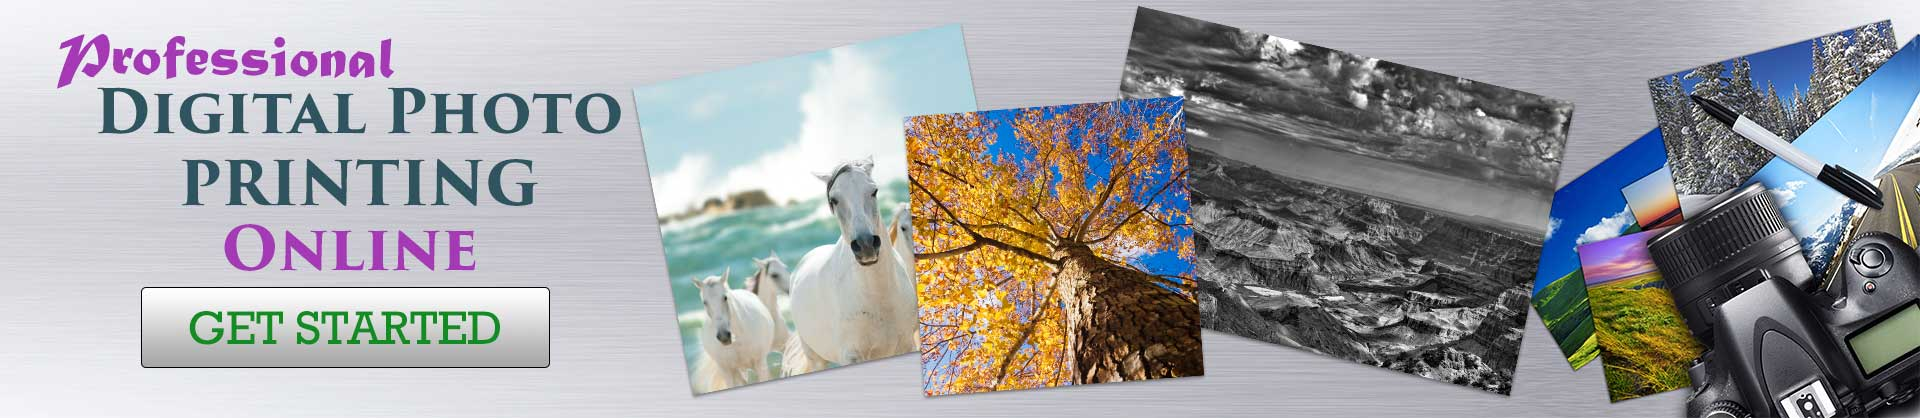 Print Your Snapshots at FinerWorks. Upload and select from a wide range of Fuji Crystal Archive paper surfaces and sizes.